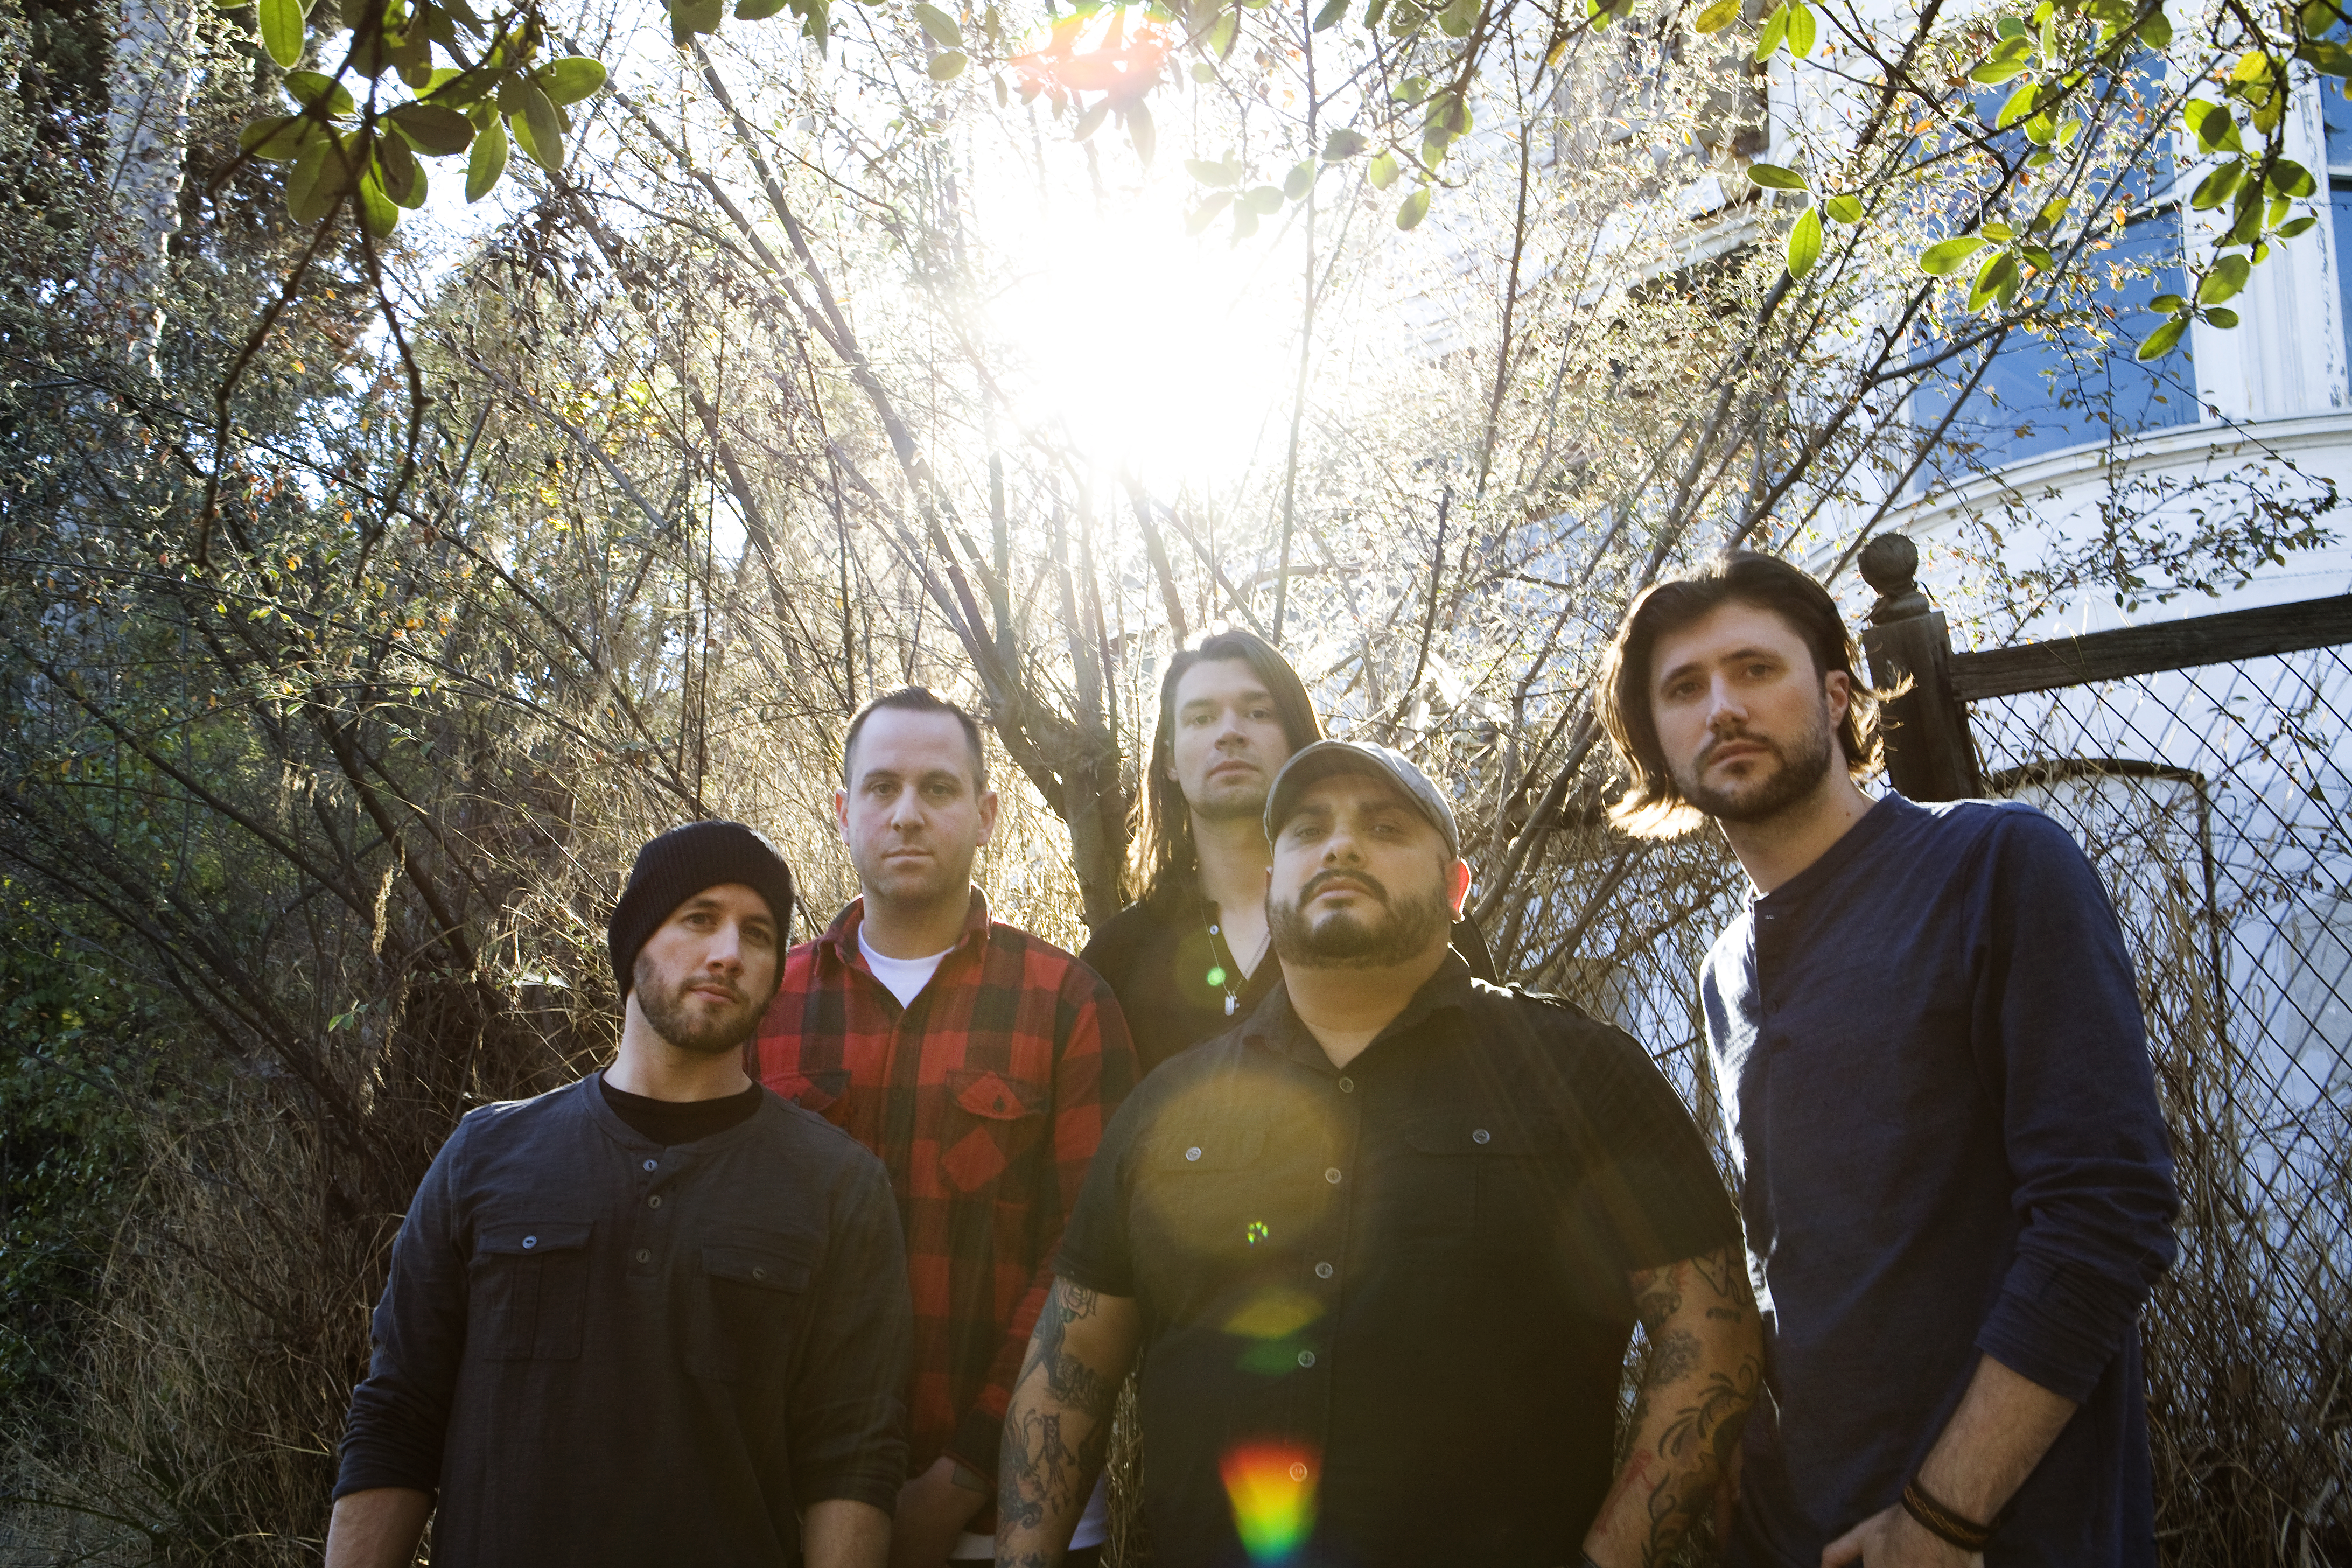 Concert Preview: Taking Back Sunday